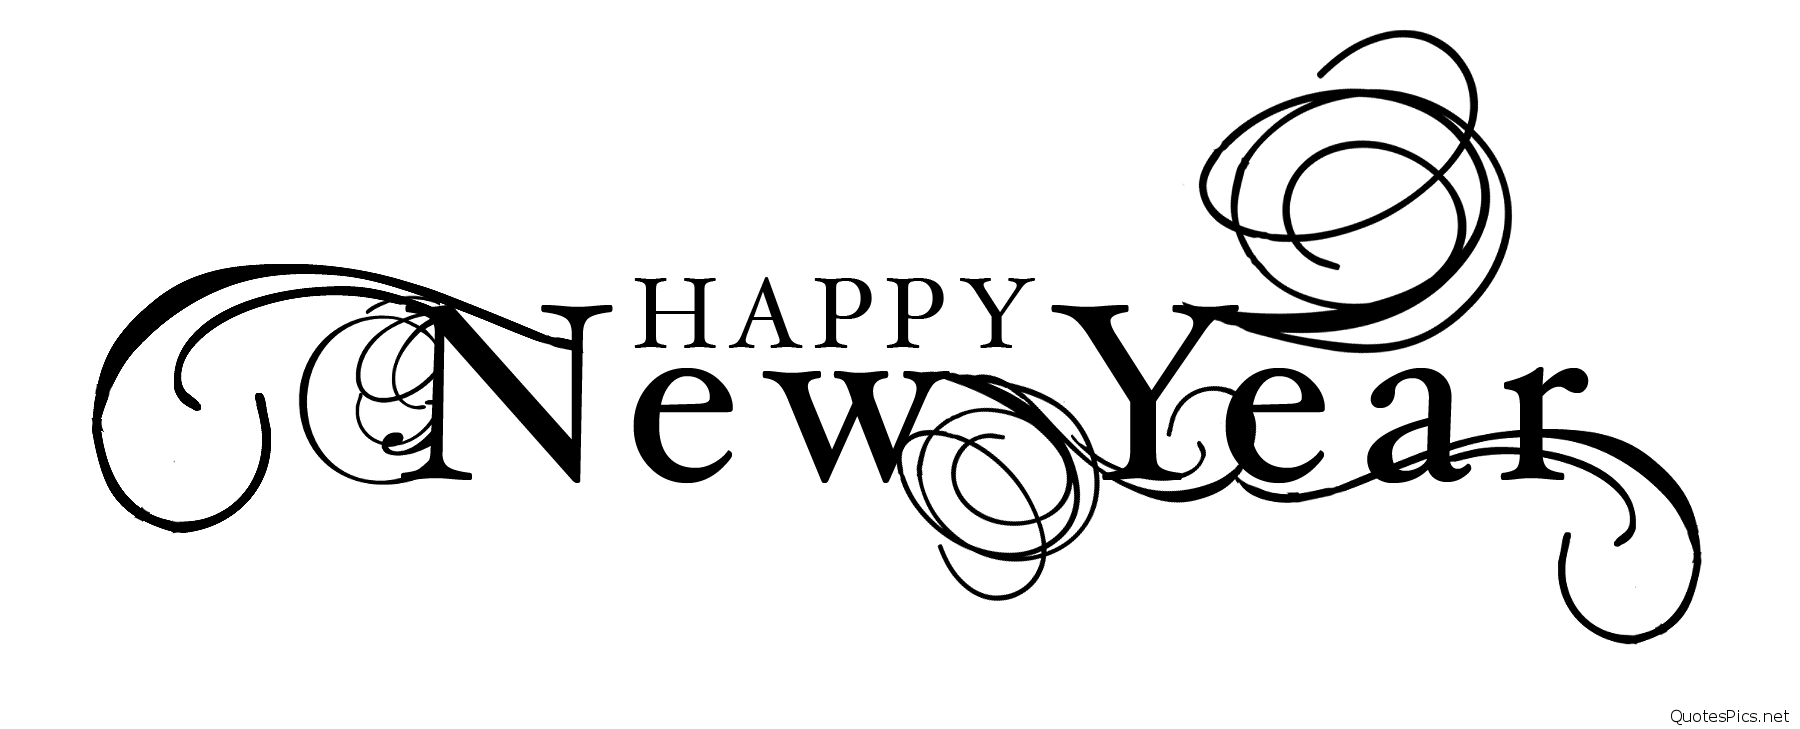 Happy New Year PNG - 20796